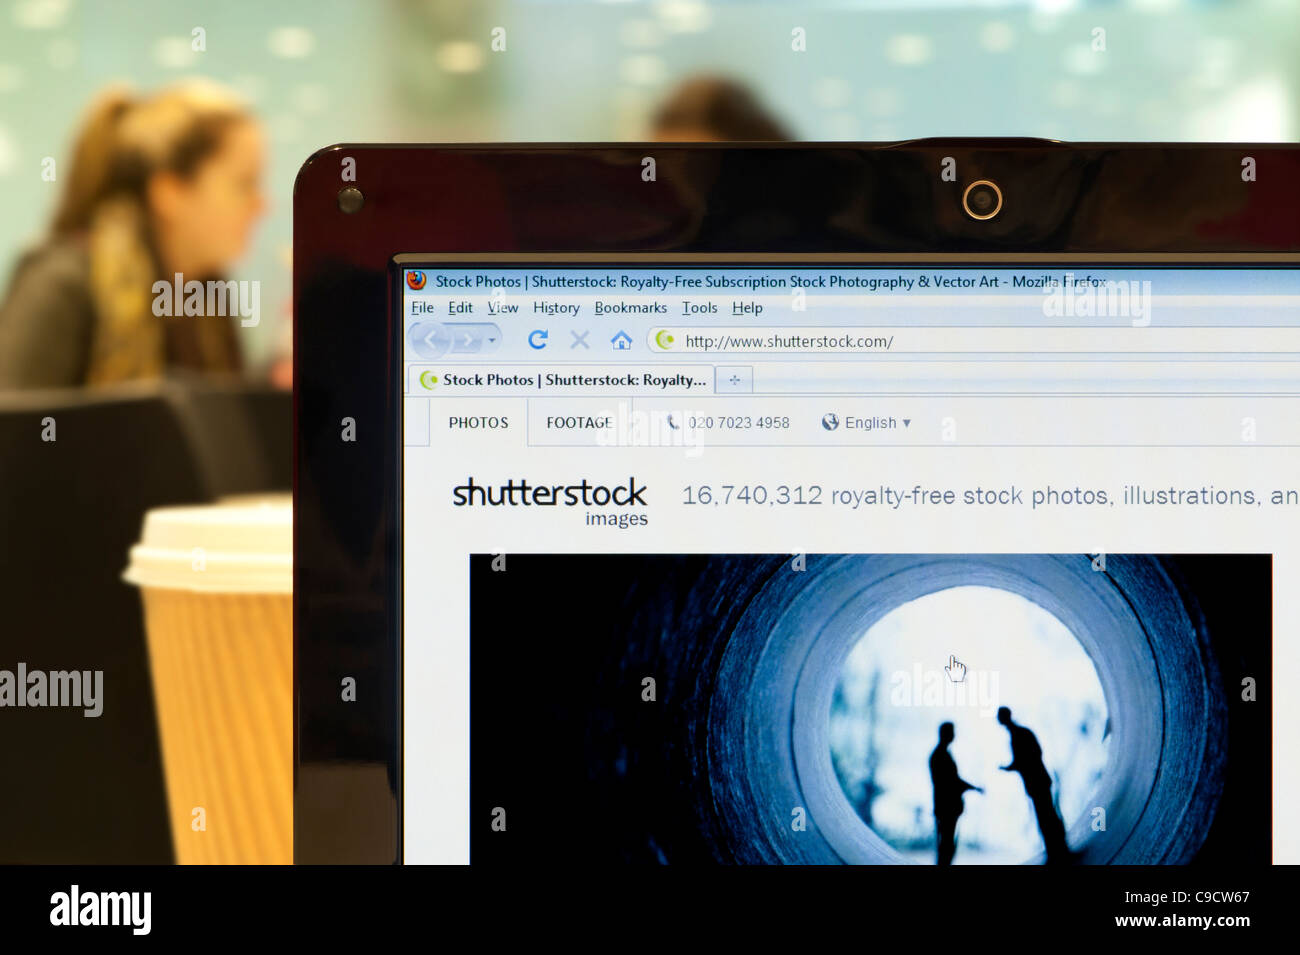 The Shutterstock website shot in a coffee shop environment (Editorial use only: print, TV, e-book and editorial Stock Photo